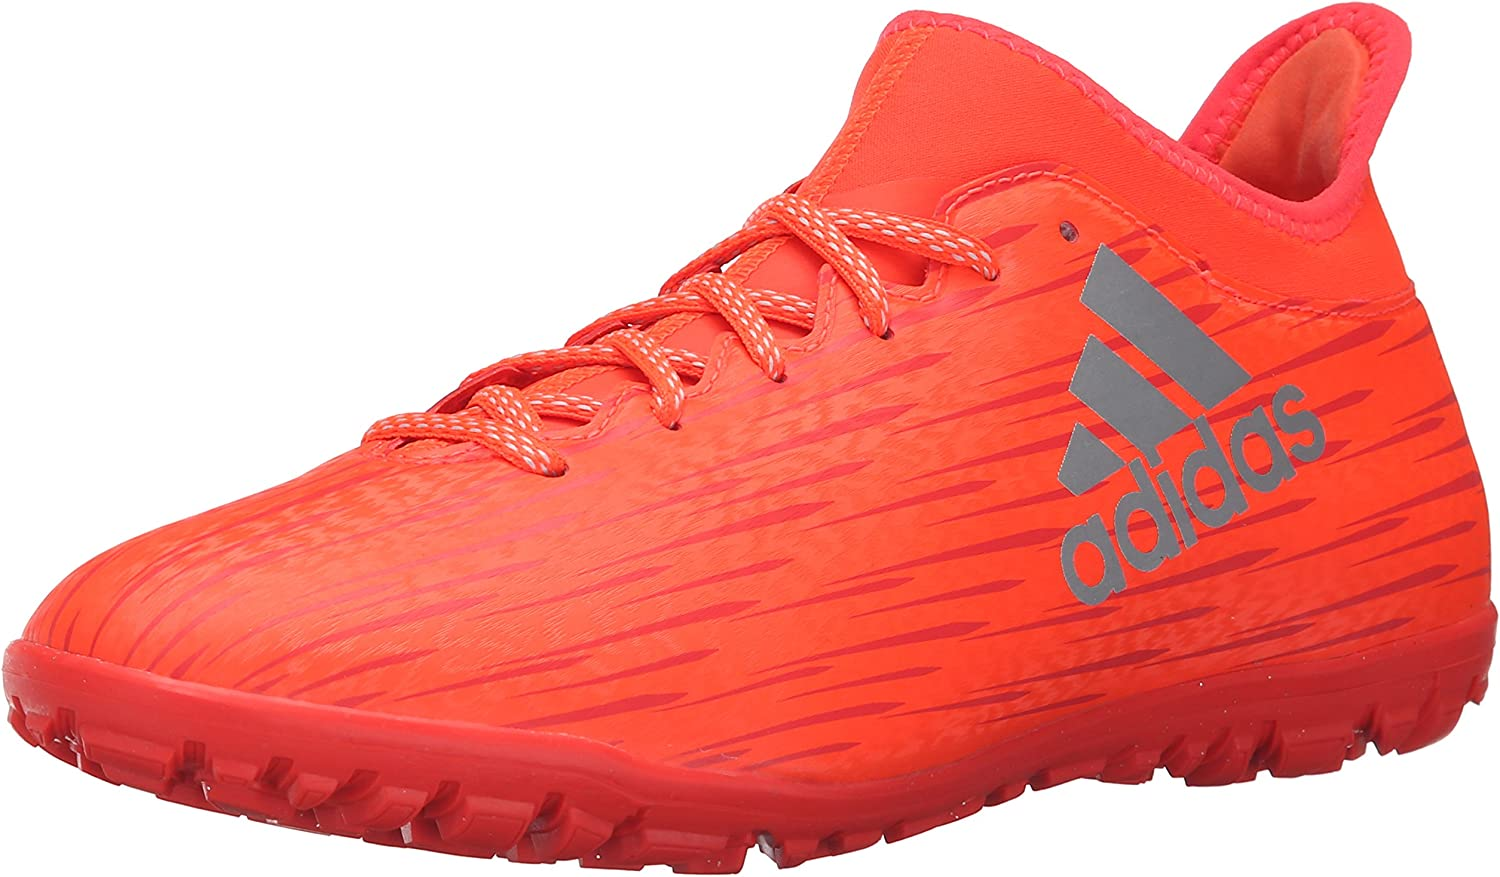 Adidas Men's X 16.3 Turf Soccer shoes